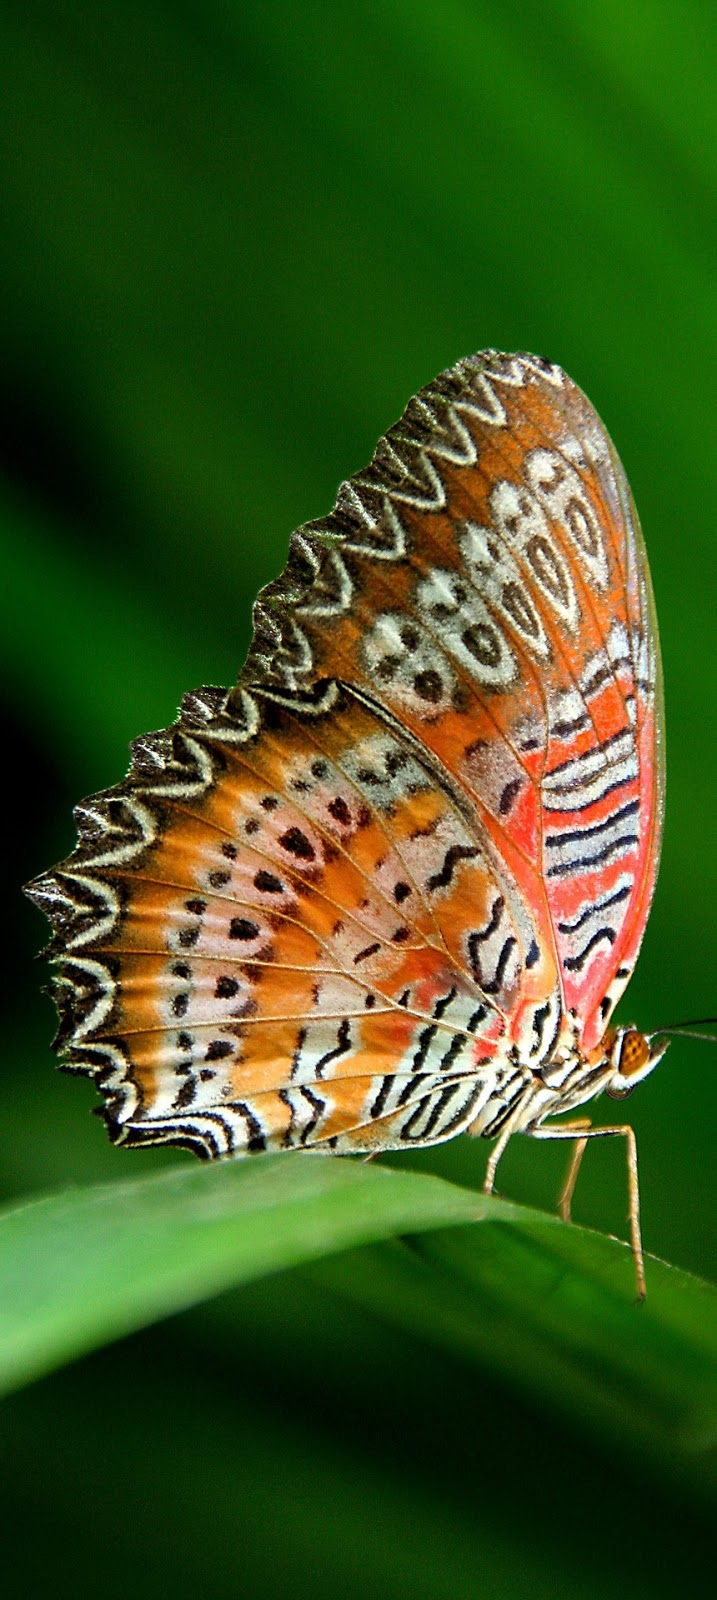 A beautiful butterfly on a leaf.